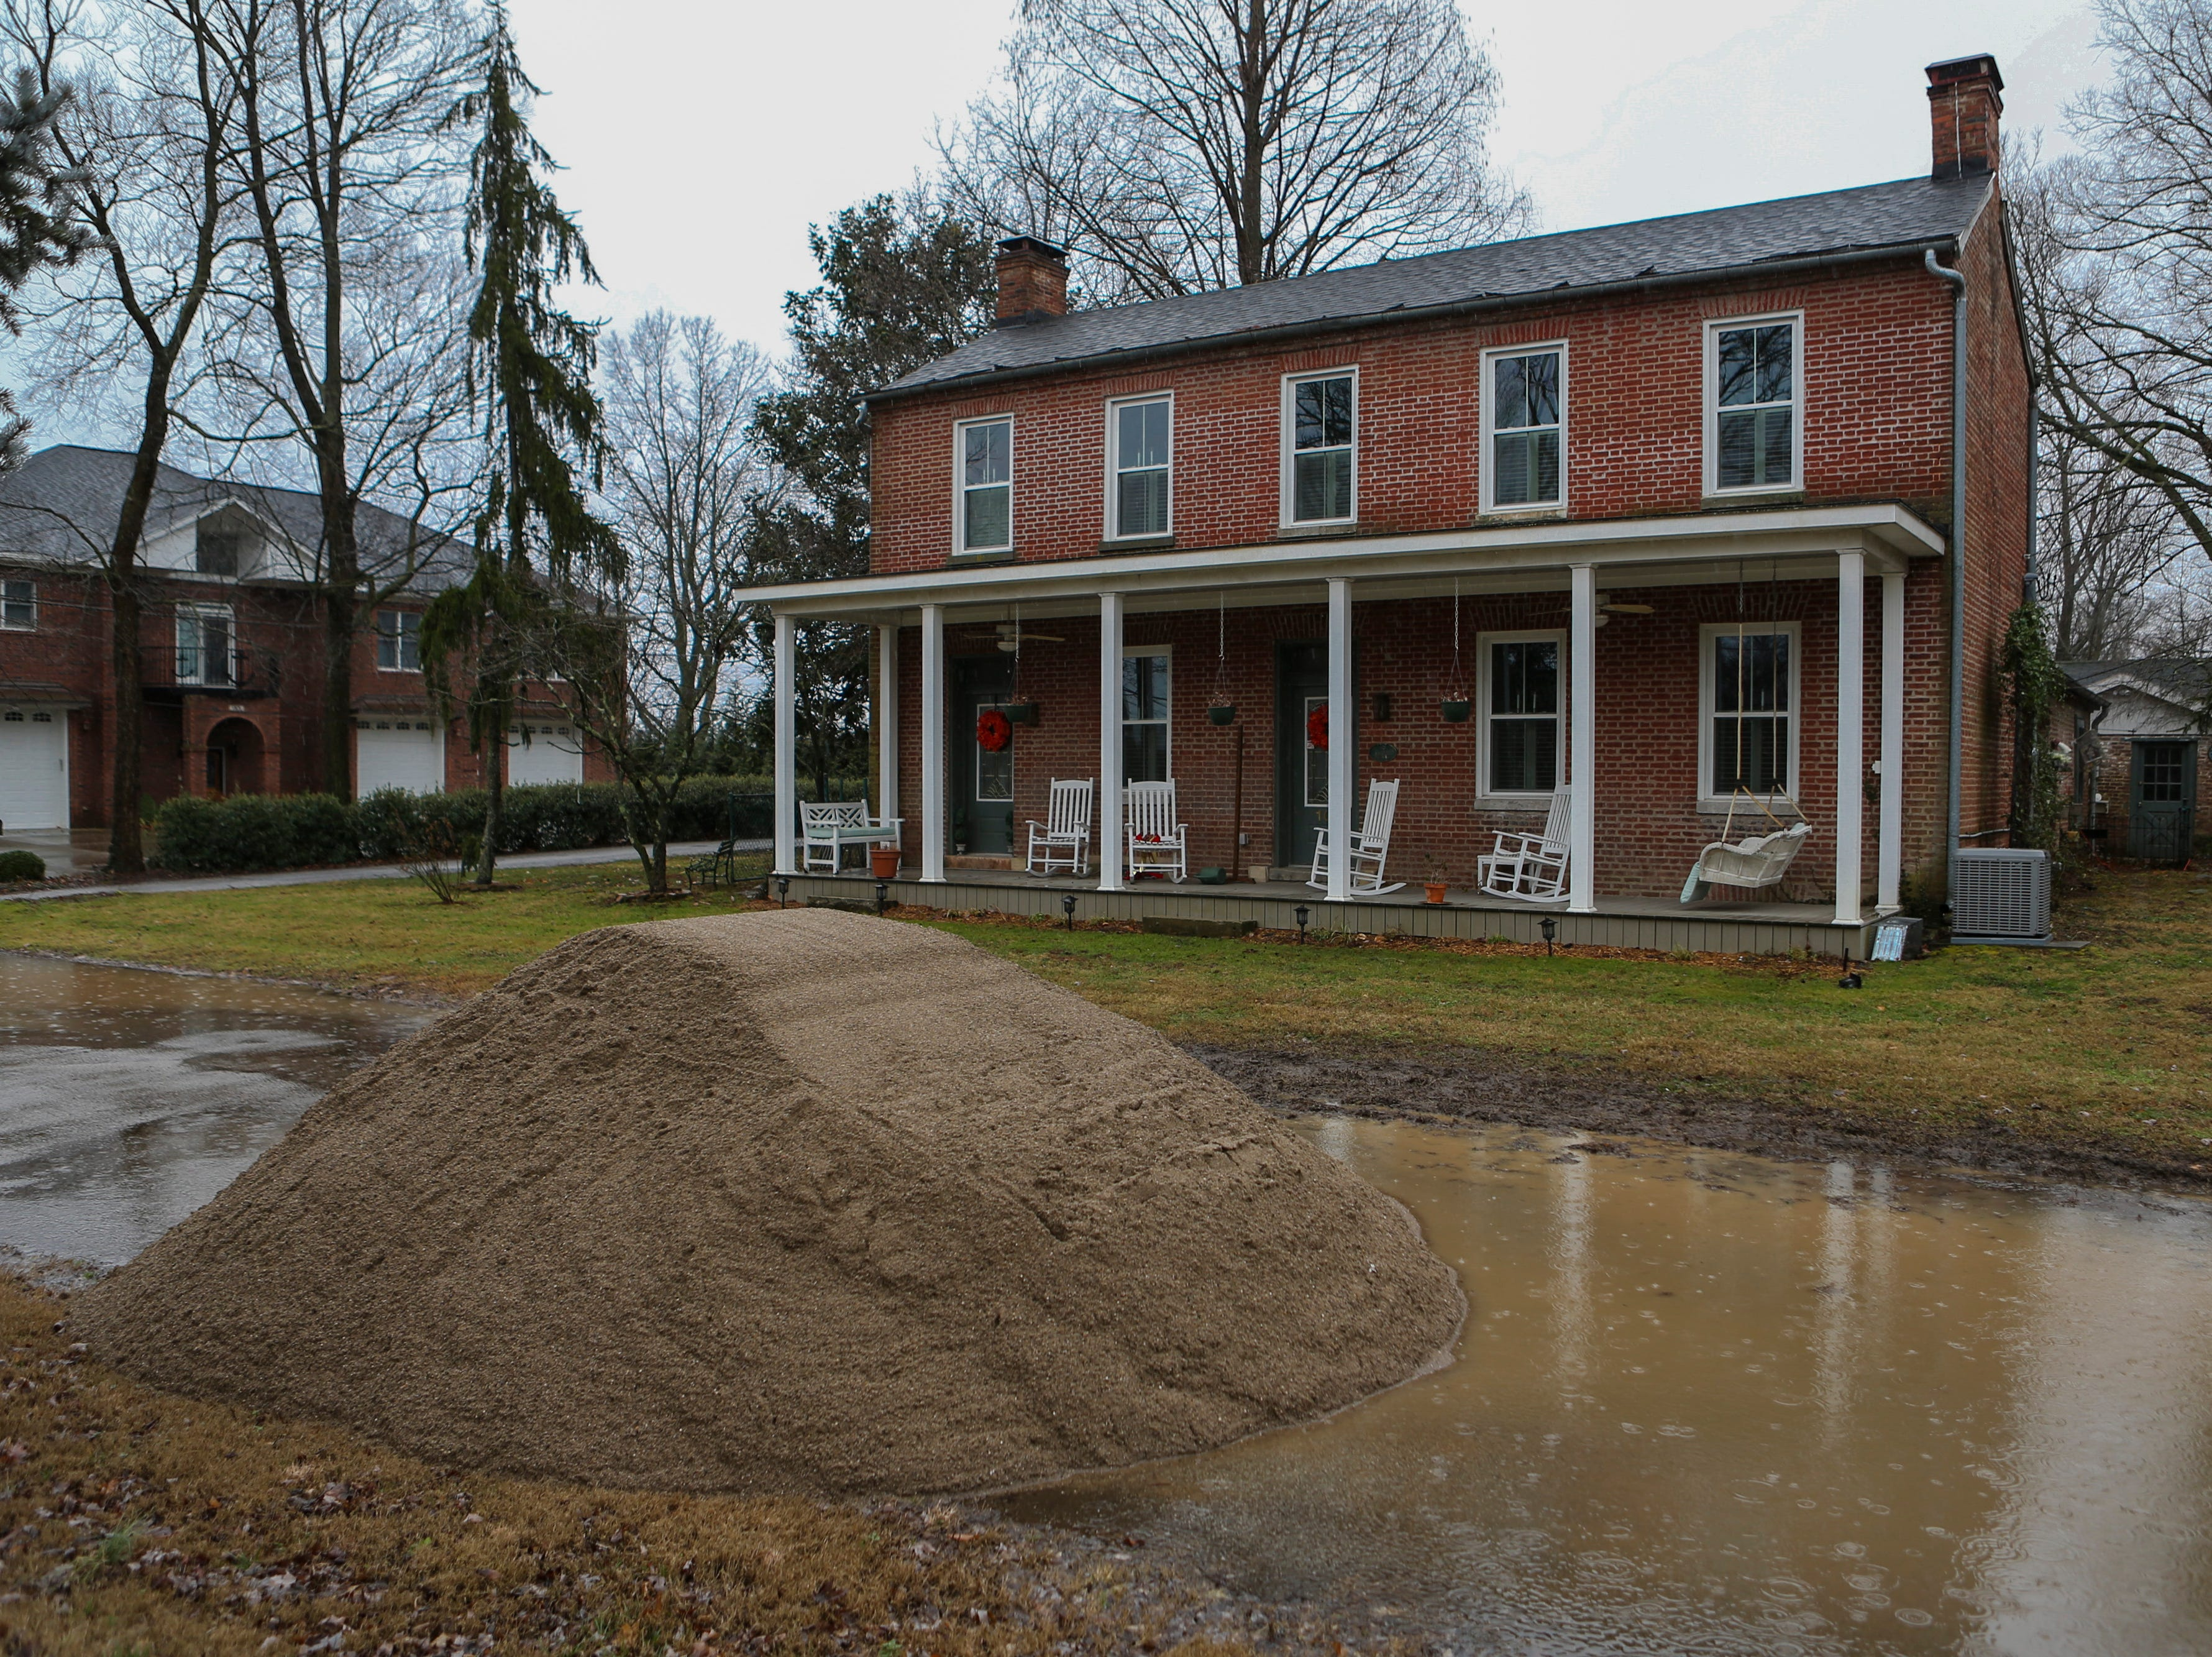 A pile of sand waits to be covered on the roads in Utica, Ind. on Monday as the area braces for high river waters and flooding. Feb. 11, 2019